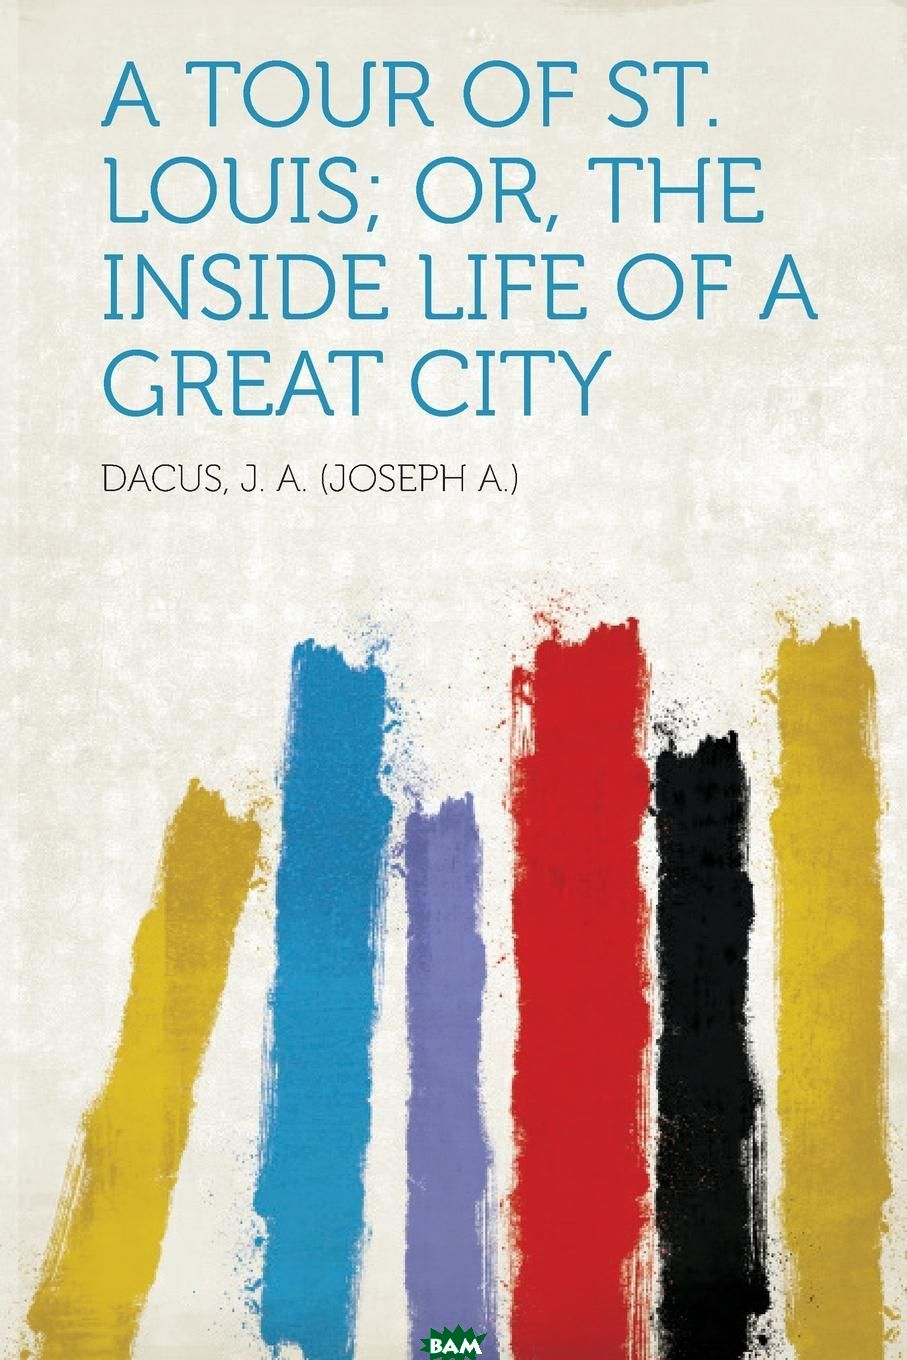 Купить A Tour of St. Louis; Or, the Inside Life of a Great City, Dacus J. a. (Joseph A. )., 9781314482065